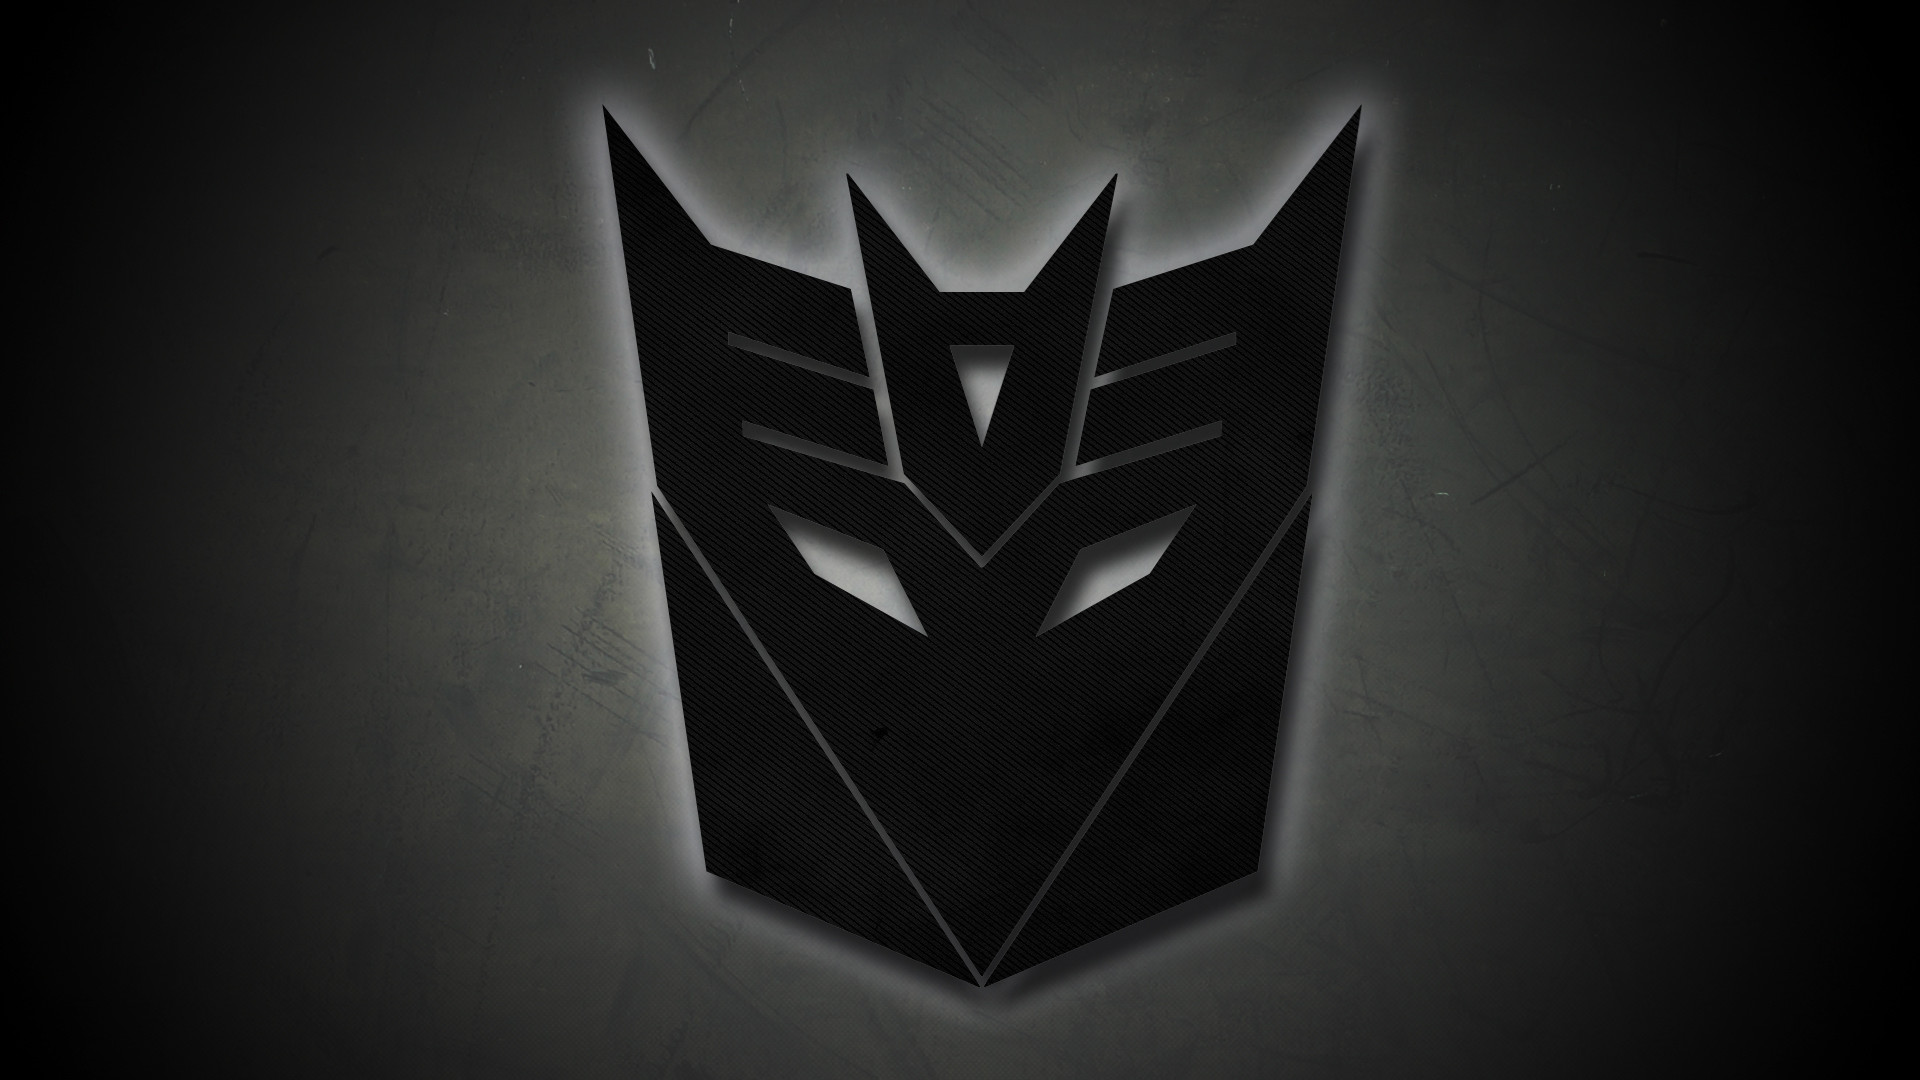 decepticon logo wallpapers 73 background pictures